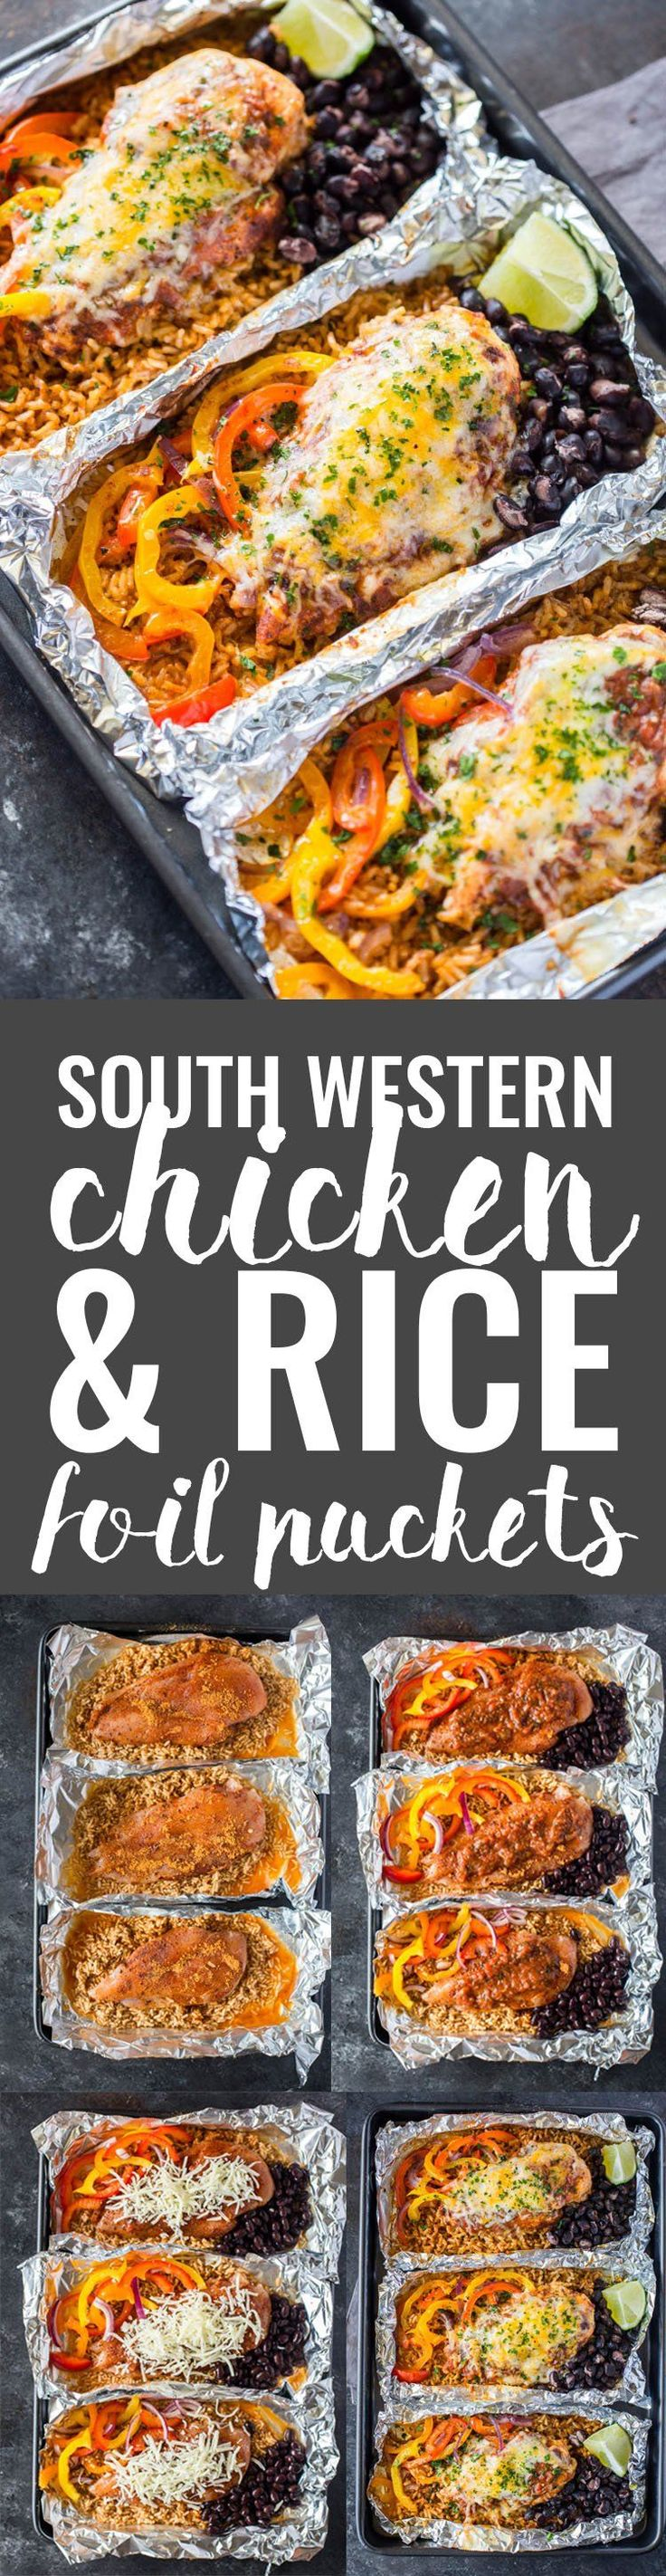 Southwestern Chicken & Rice Foil Packets #campingrecipes